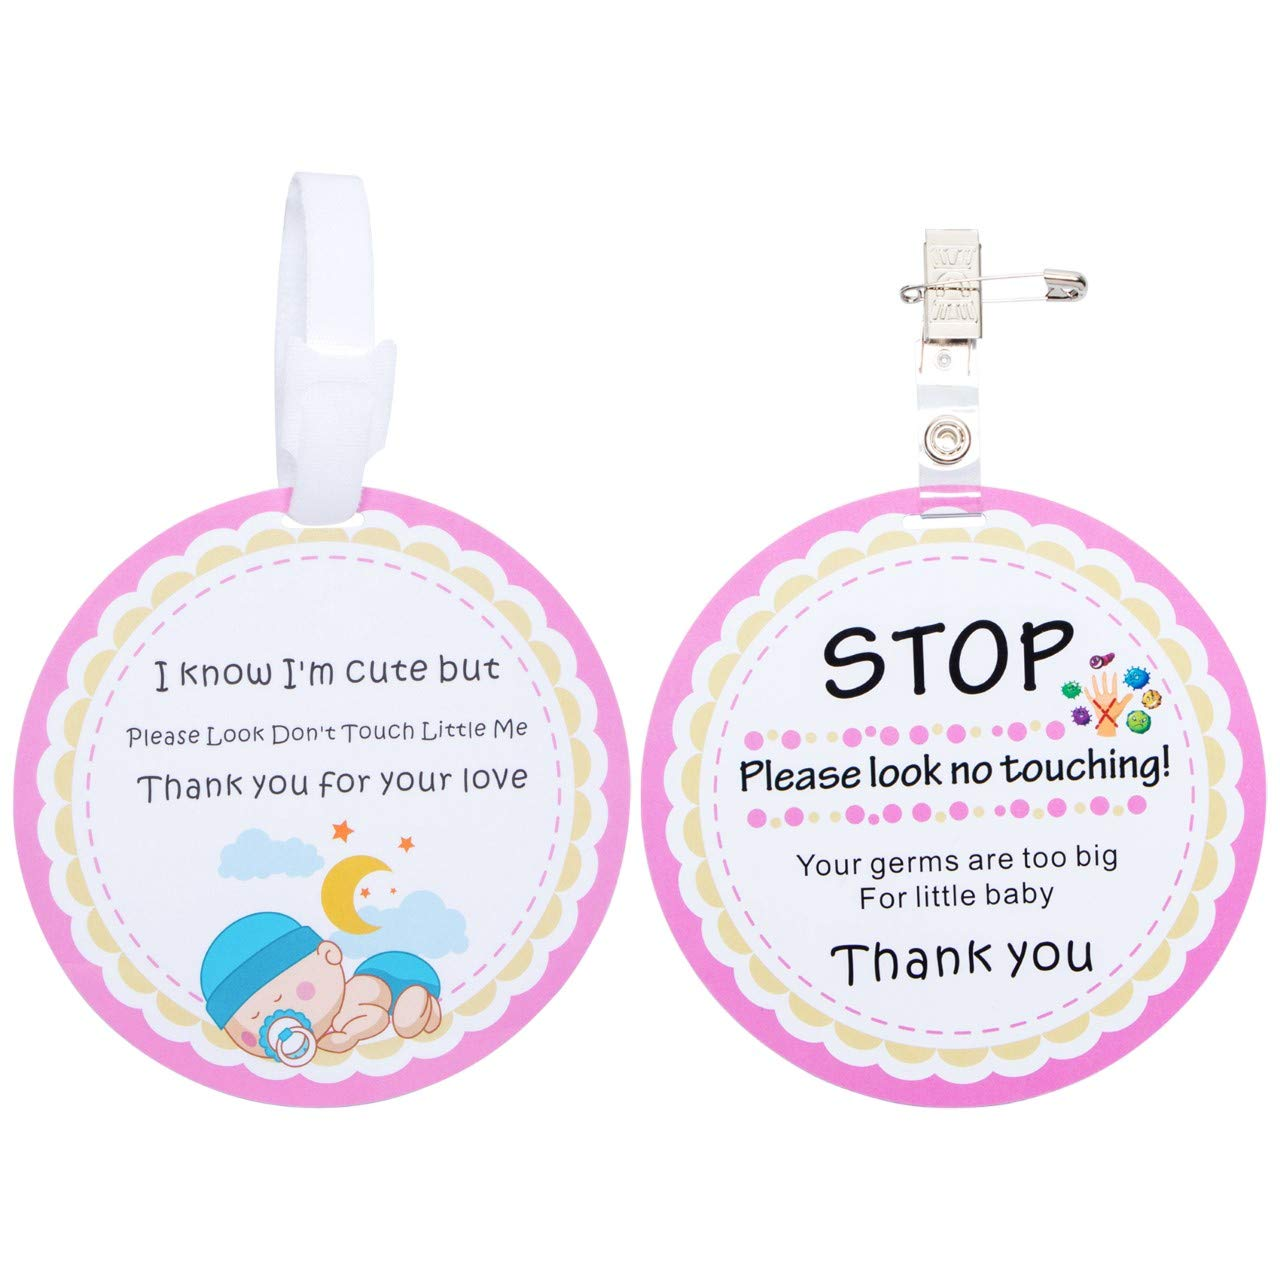 Stop No Touching Baby Car Seat Sign or Stroller Tag 2 Pack